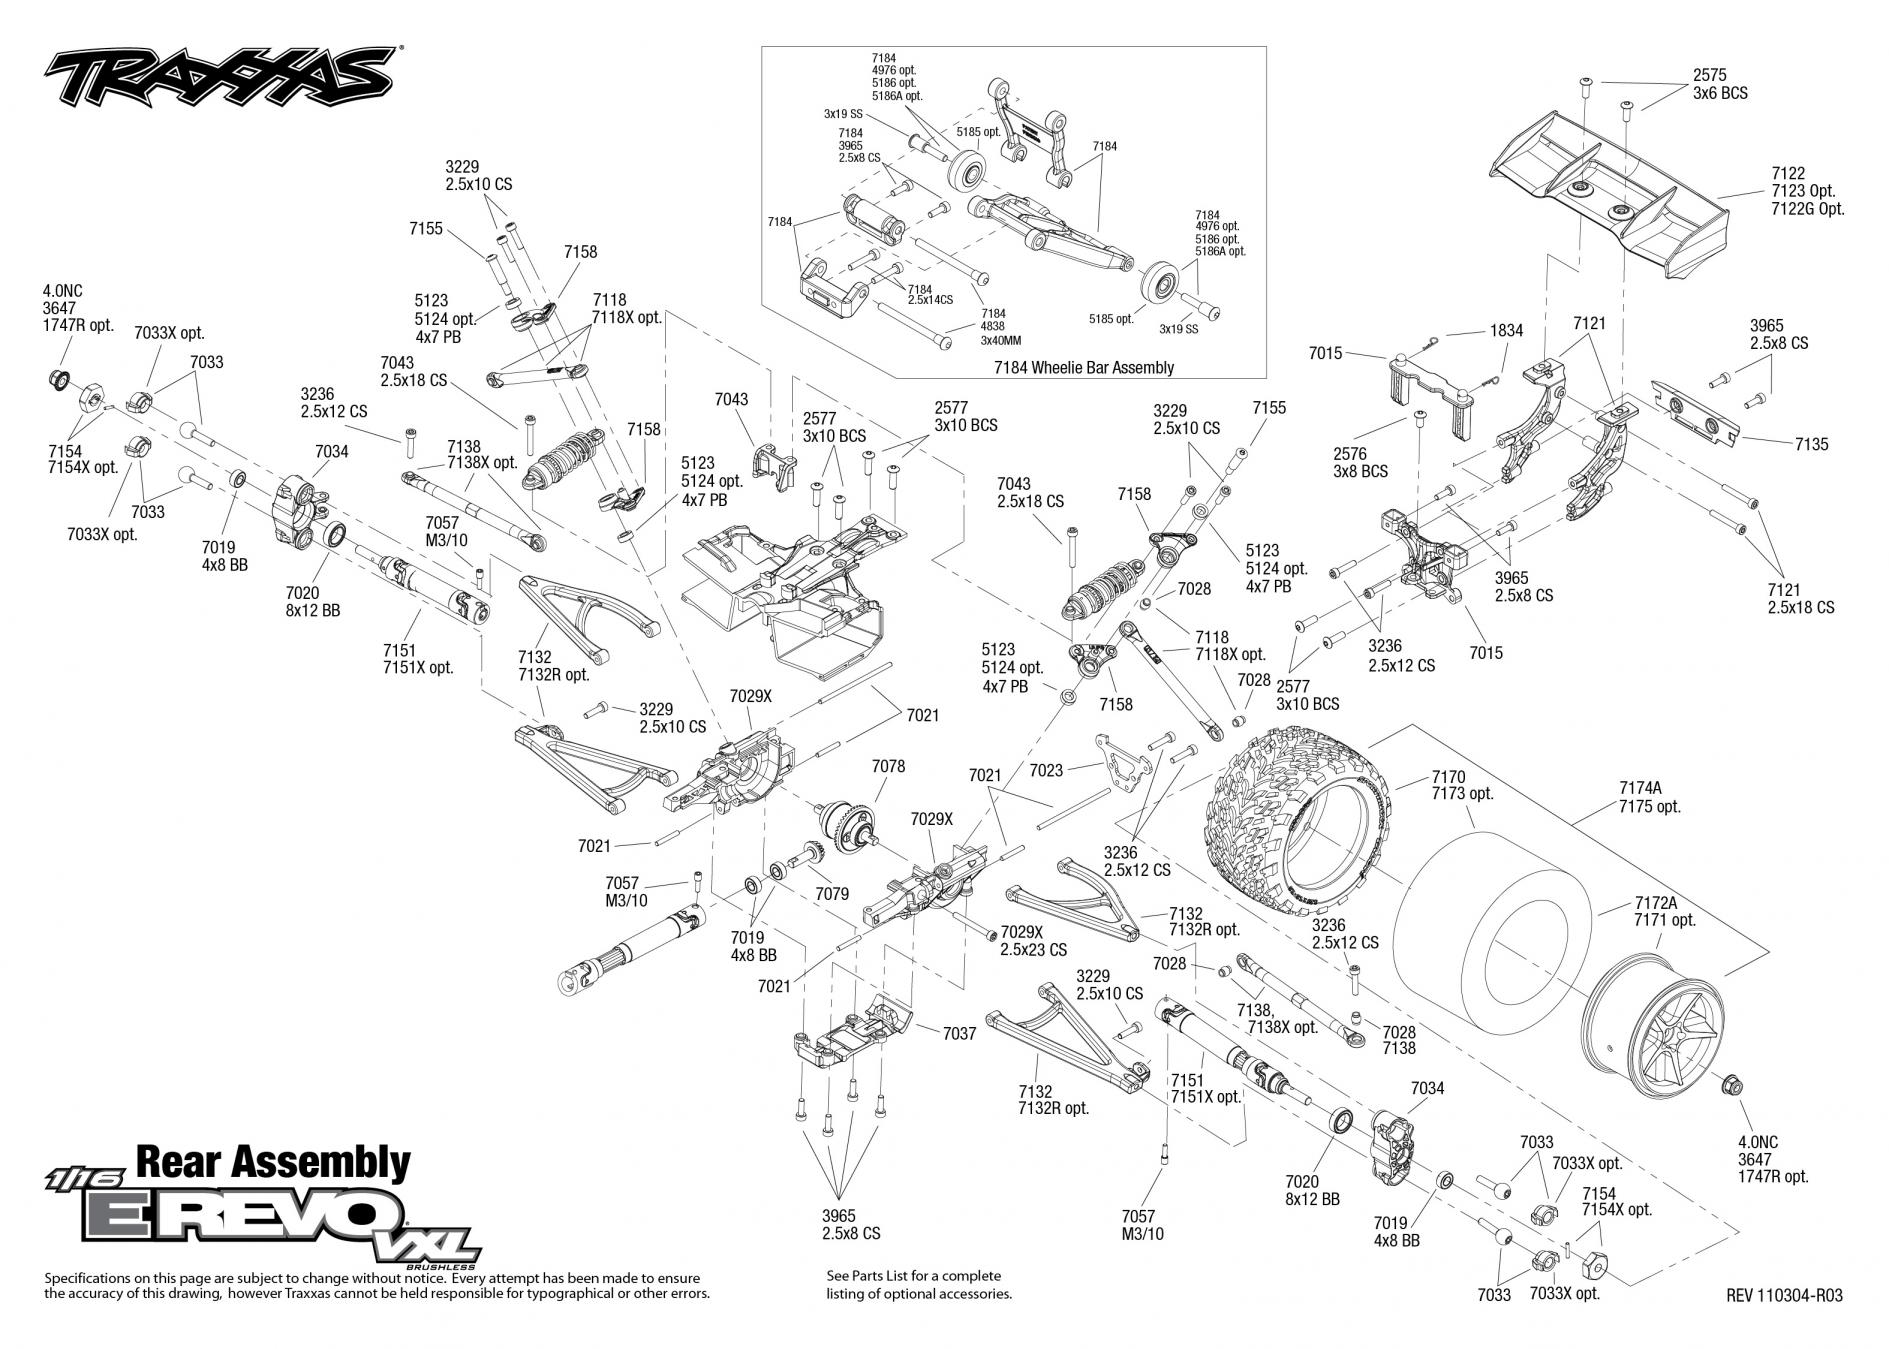 Rant Losi Rtr Manuals R C Tech Forums